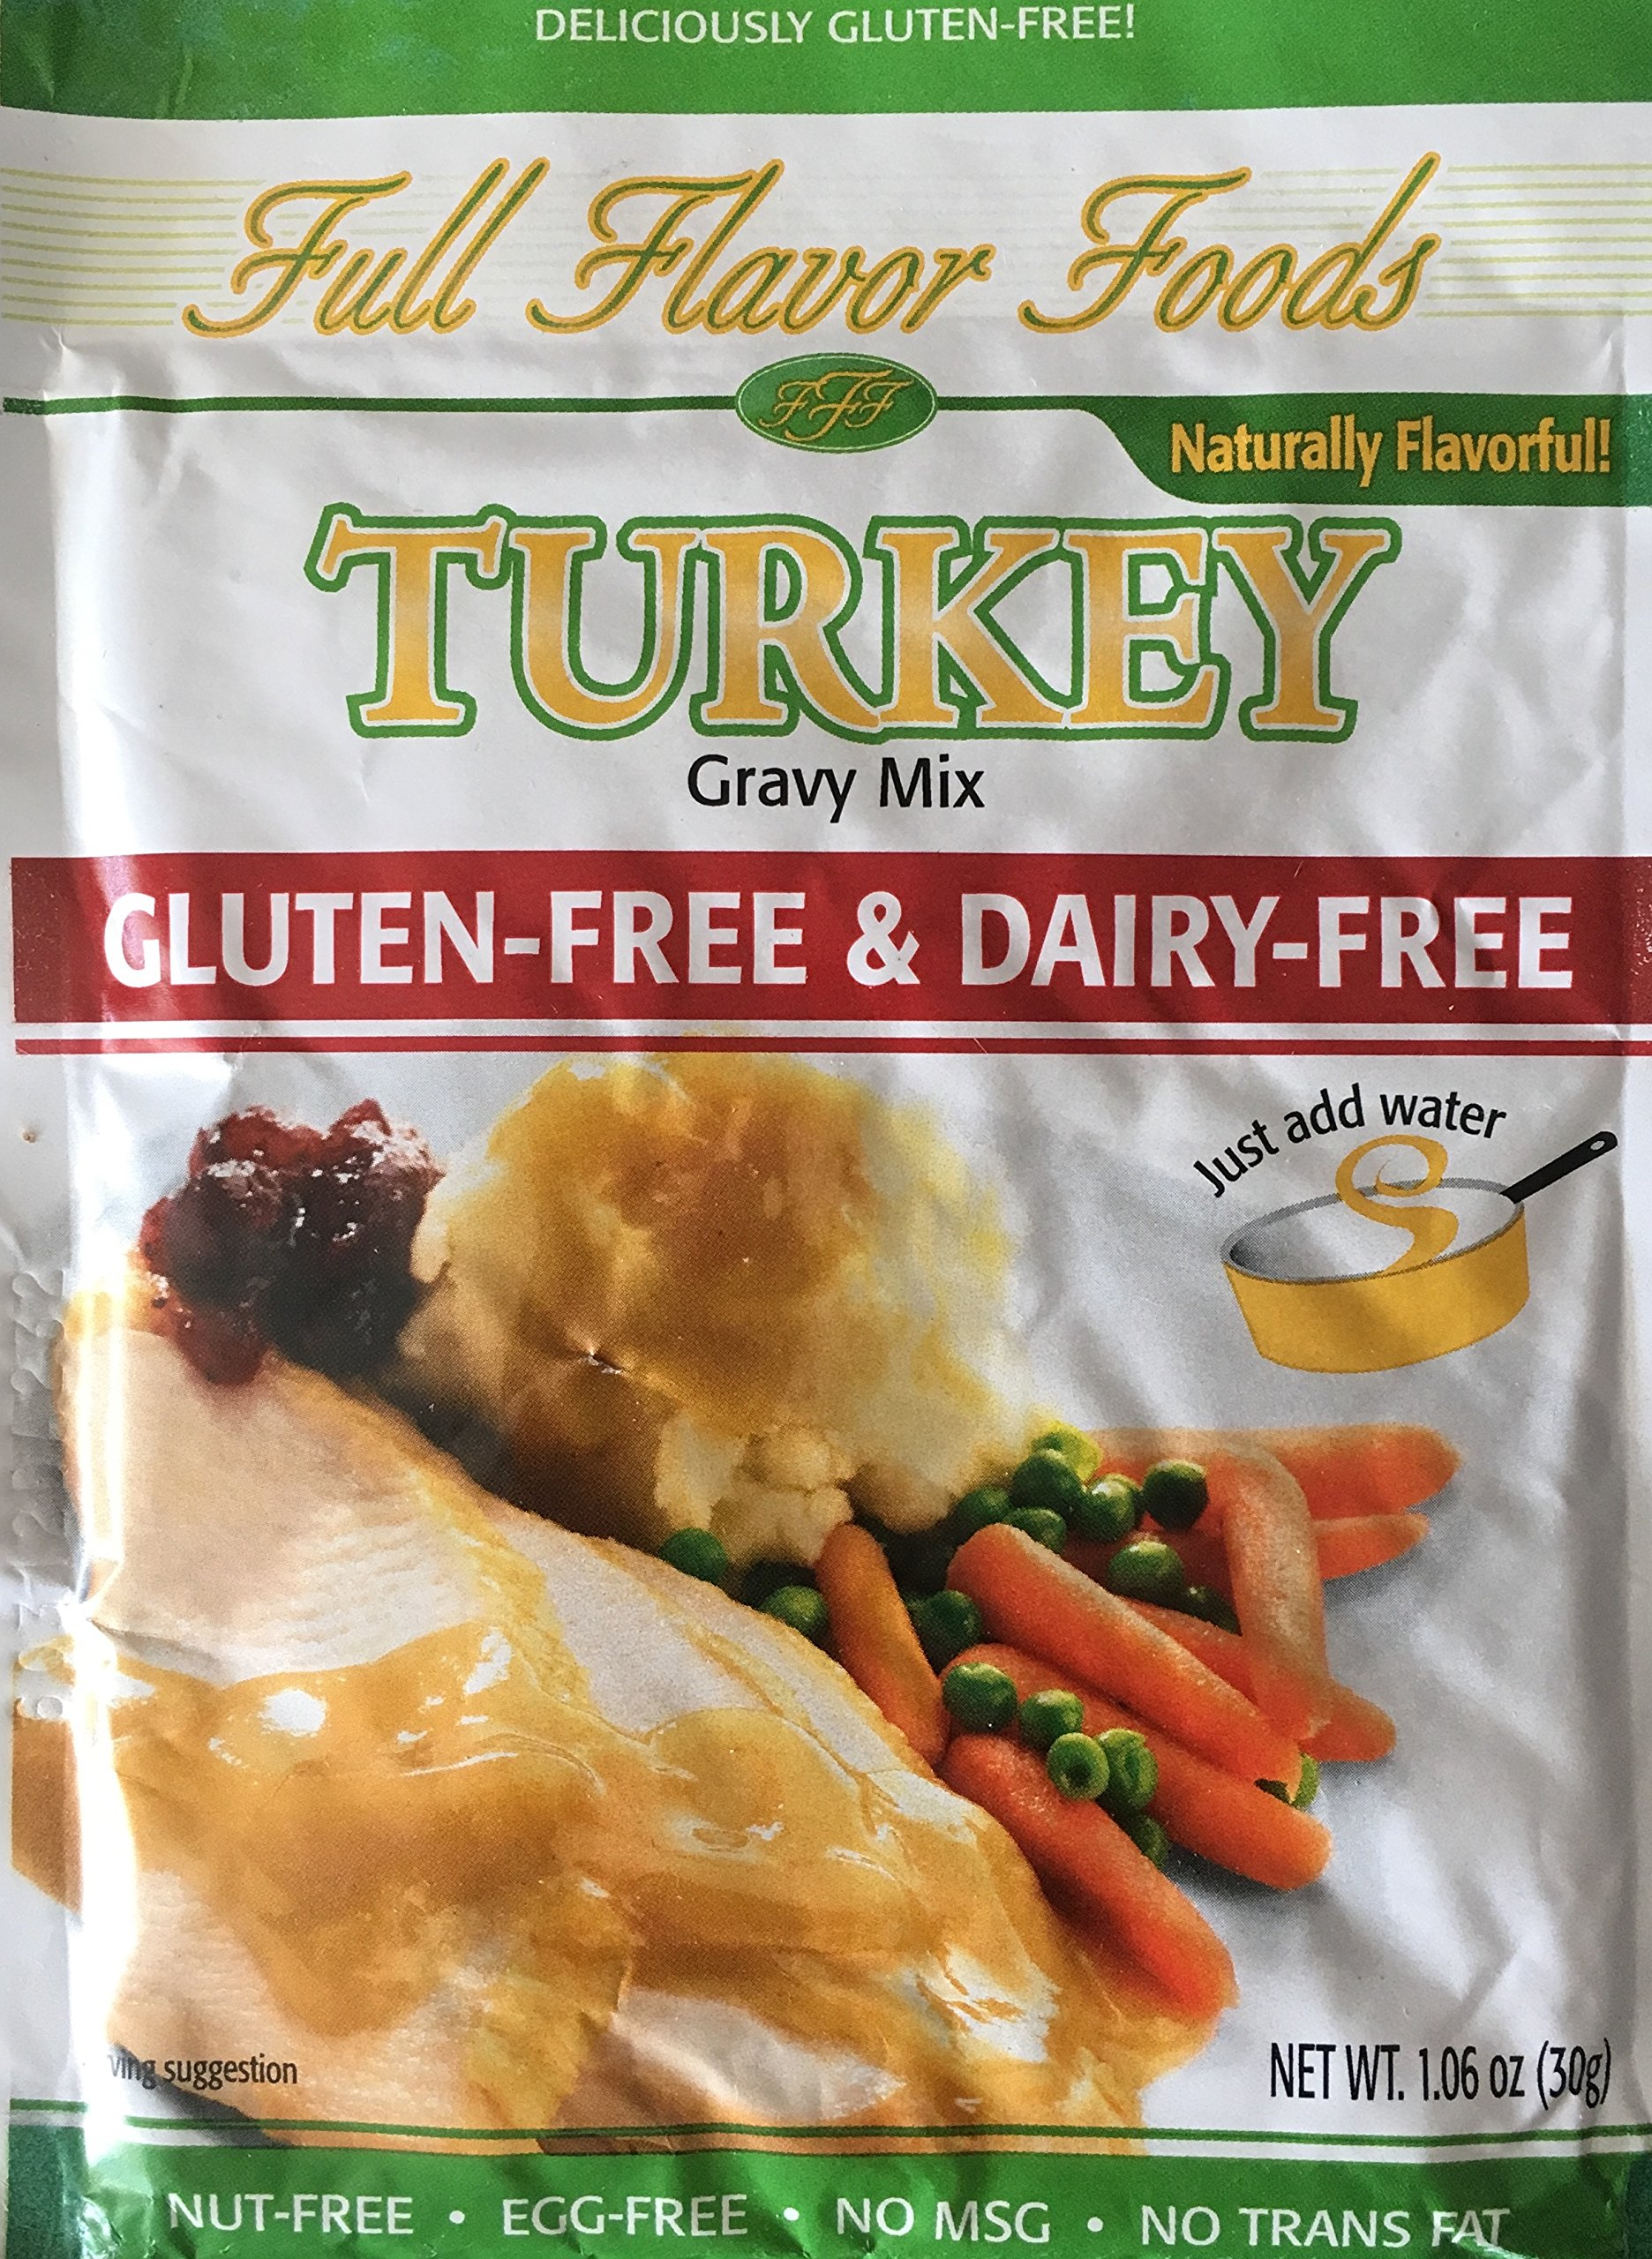 Gluten-Free & Dairy-Free Complete Turkey Gravy Mix, Pack of 3 by Full Flavor Foods